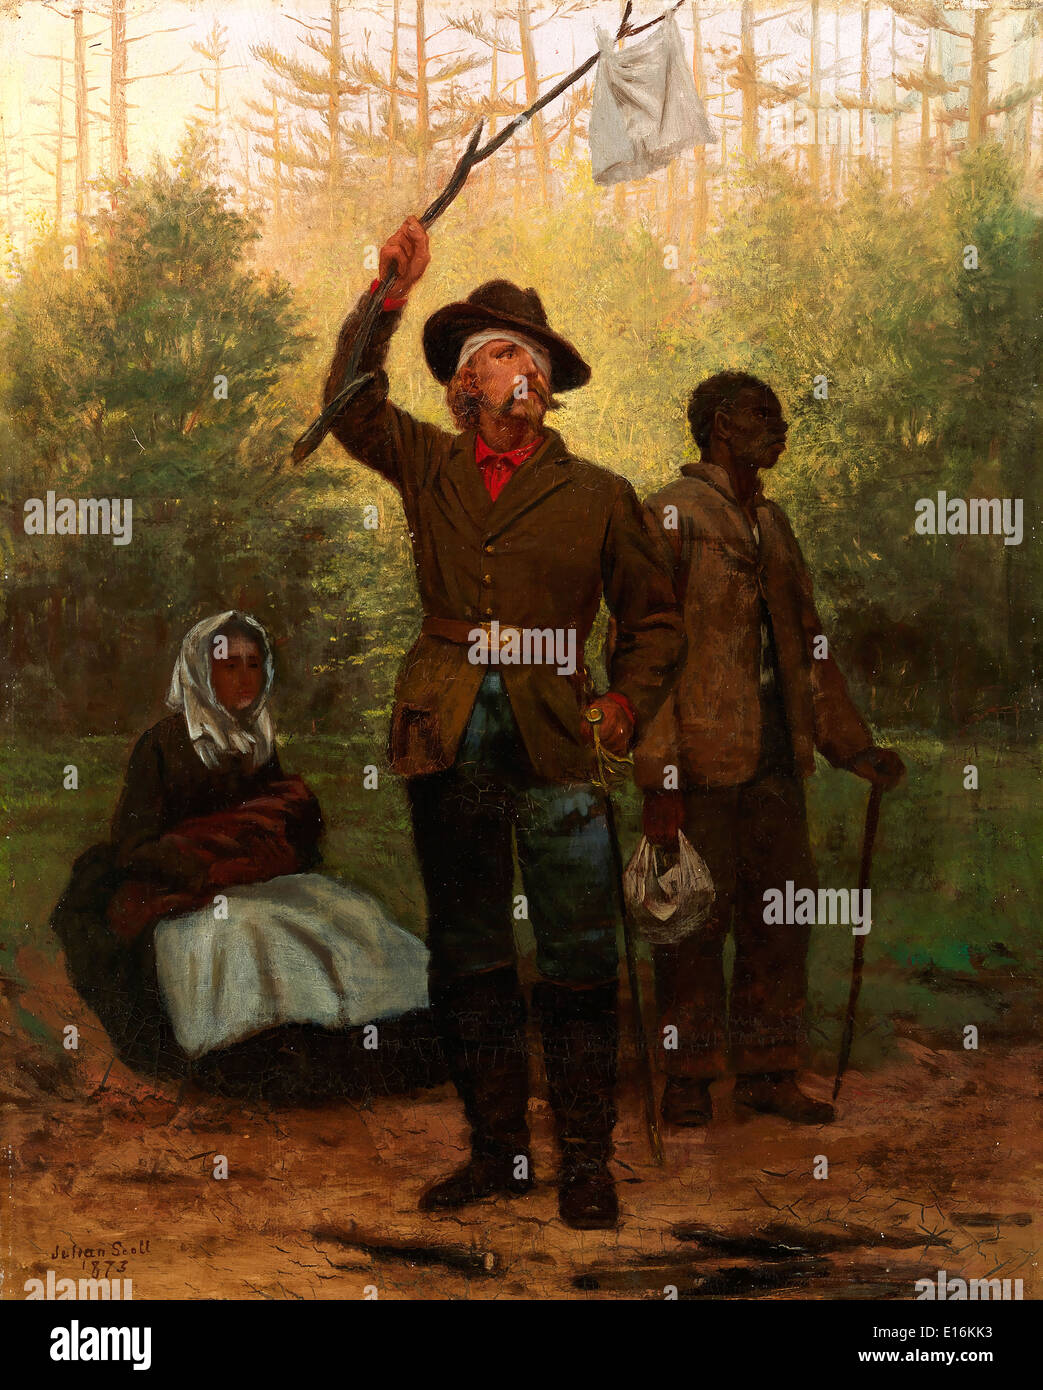 Surrender of a Confederate Soldier by Julian Scott, 1873 - Stock Image